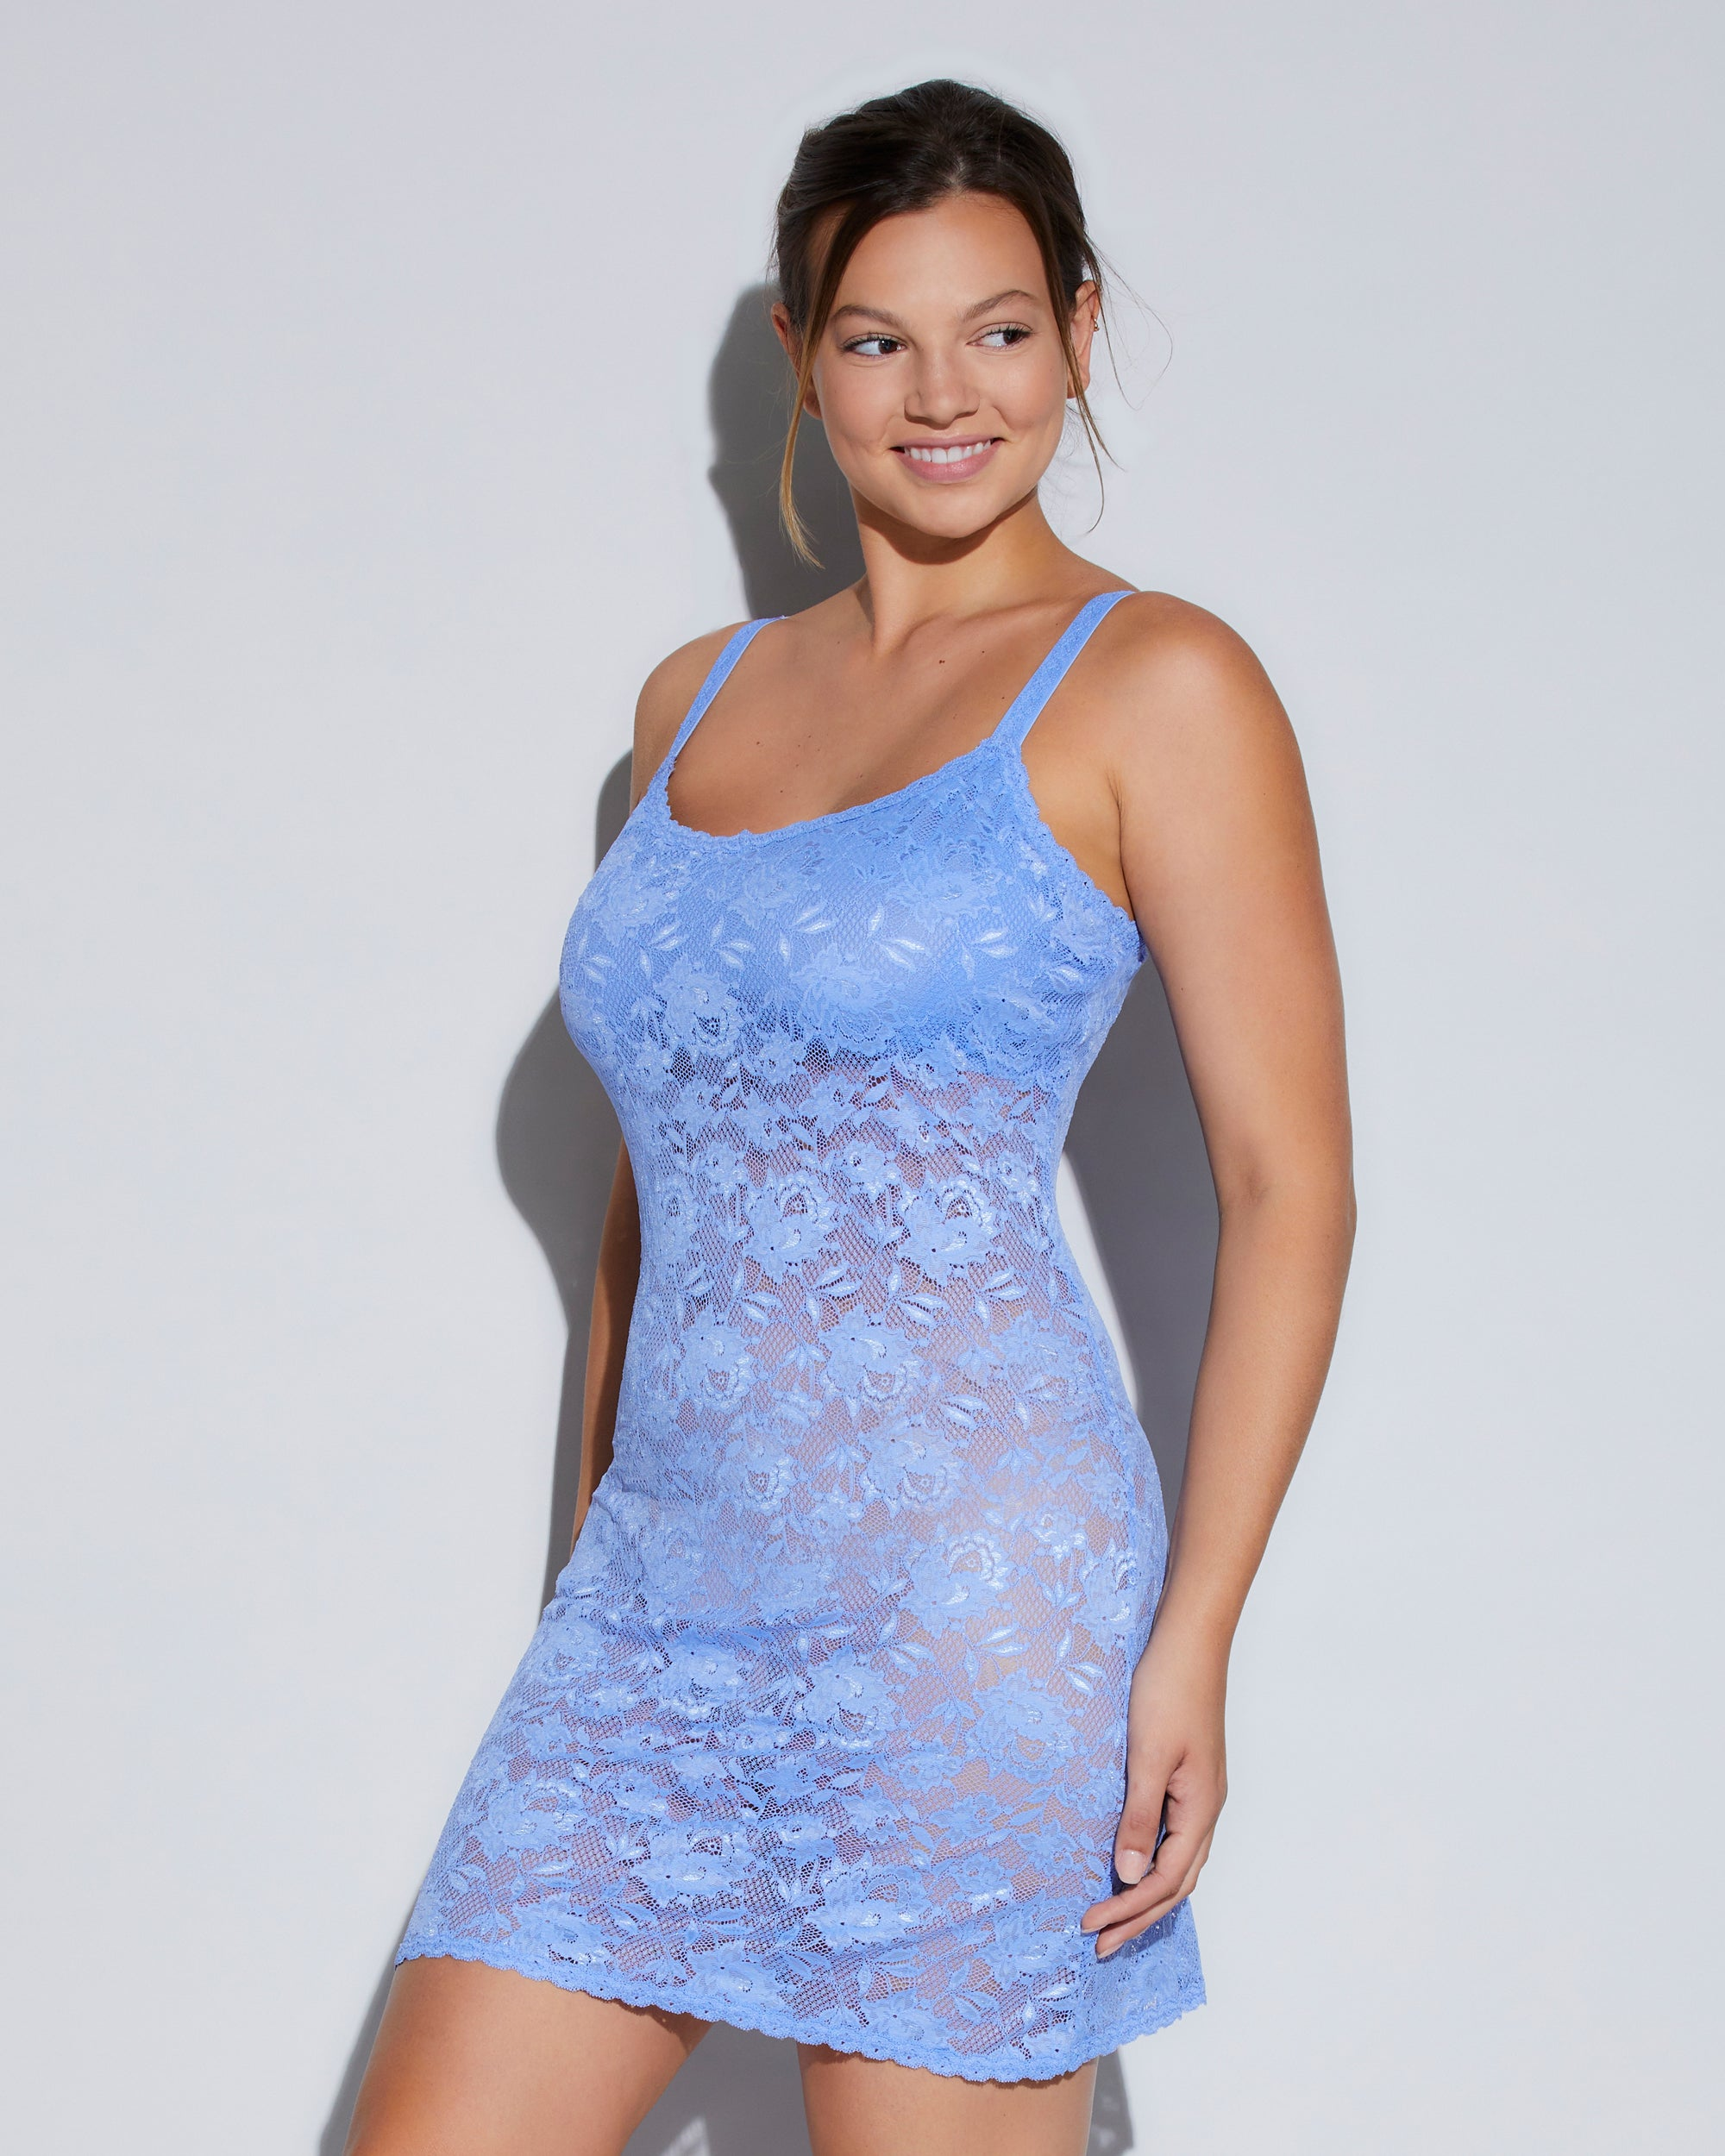 cosabella womens never say never curvy foxie chemise, blue, large, lace chemise